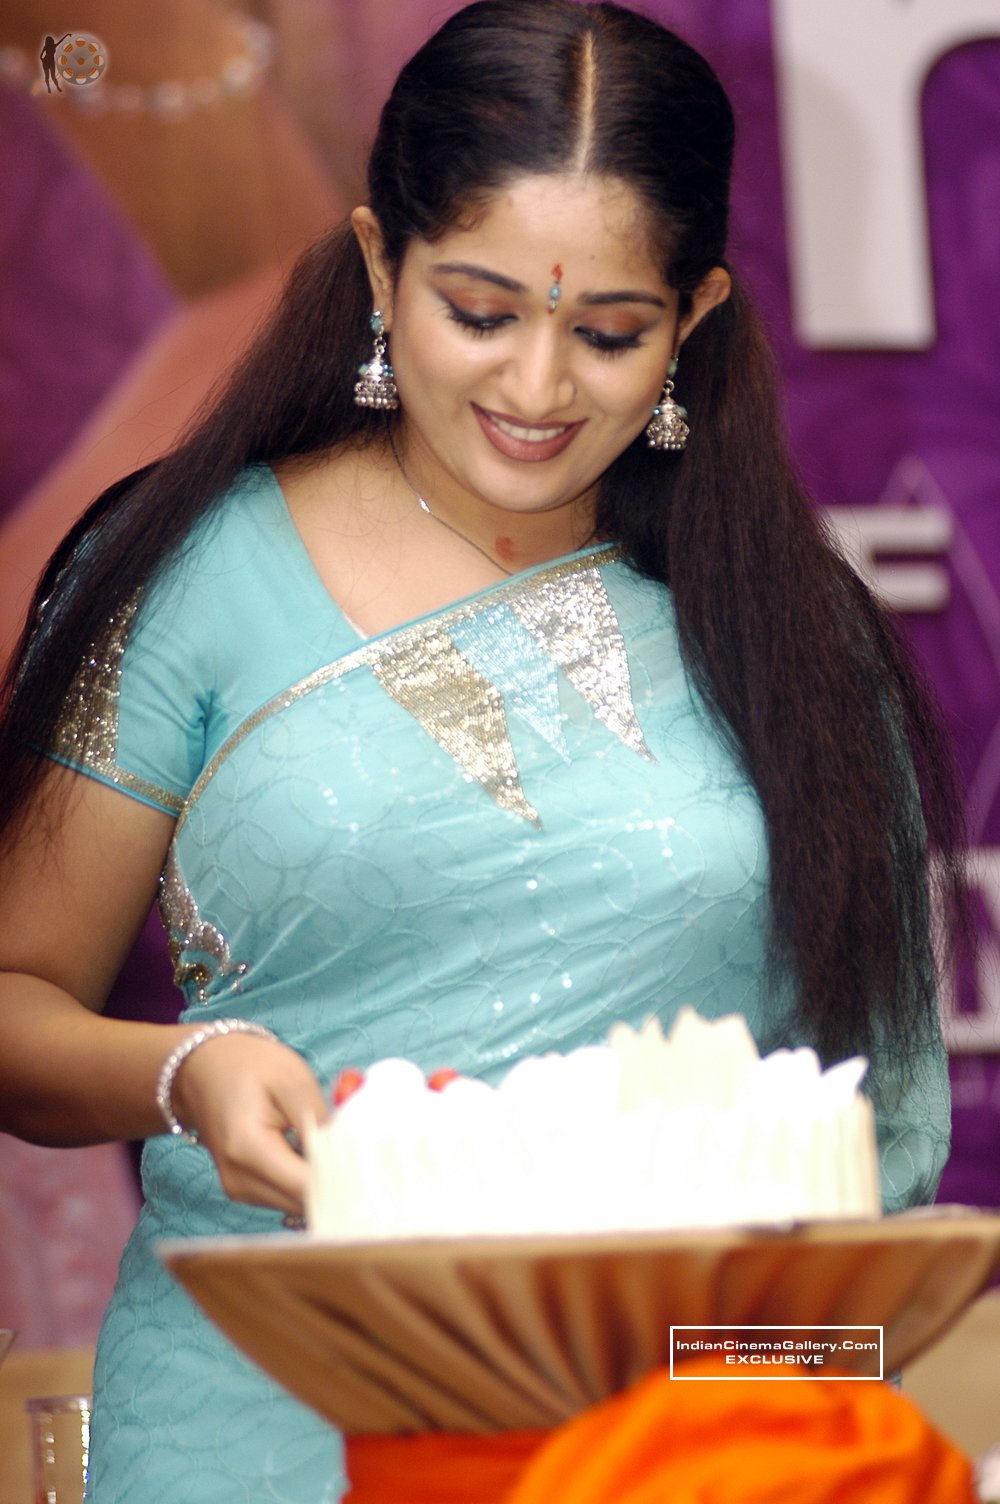 Apologise, Actress kavya madhavan sex nude naked pics apologise, but